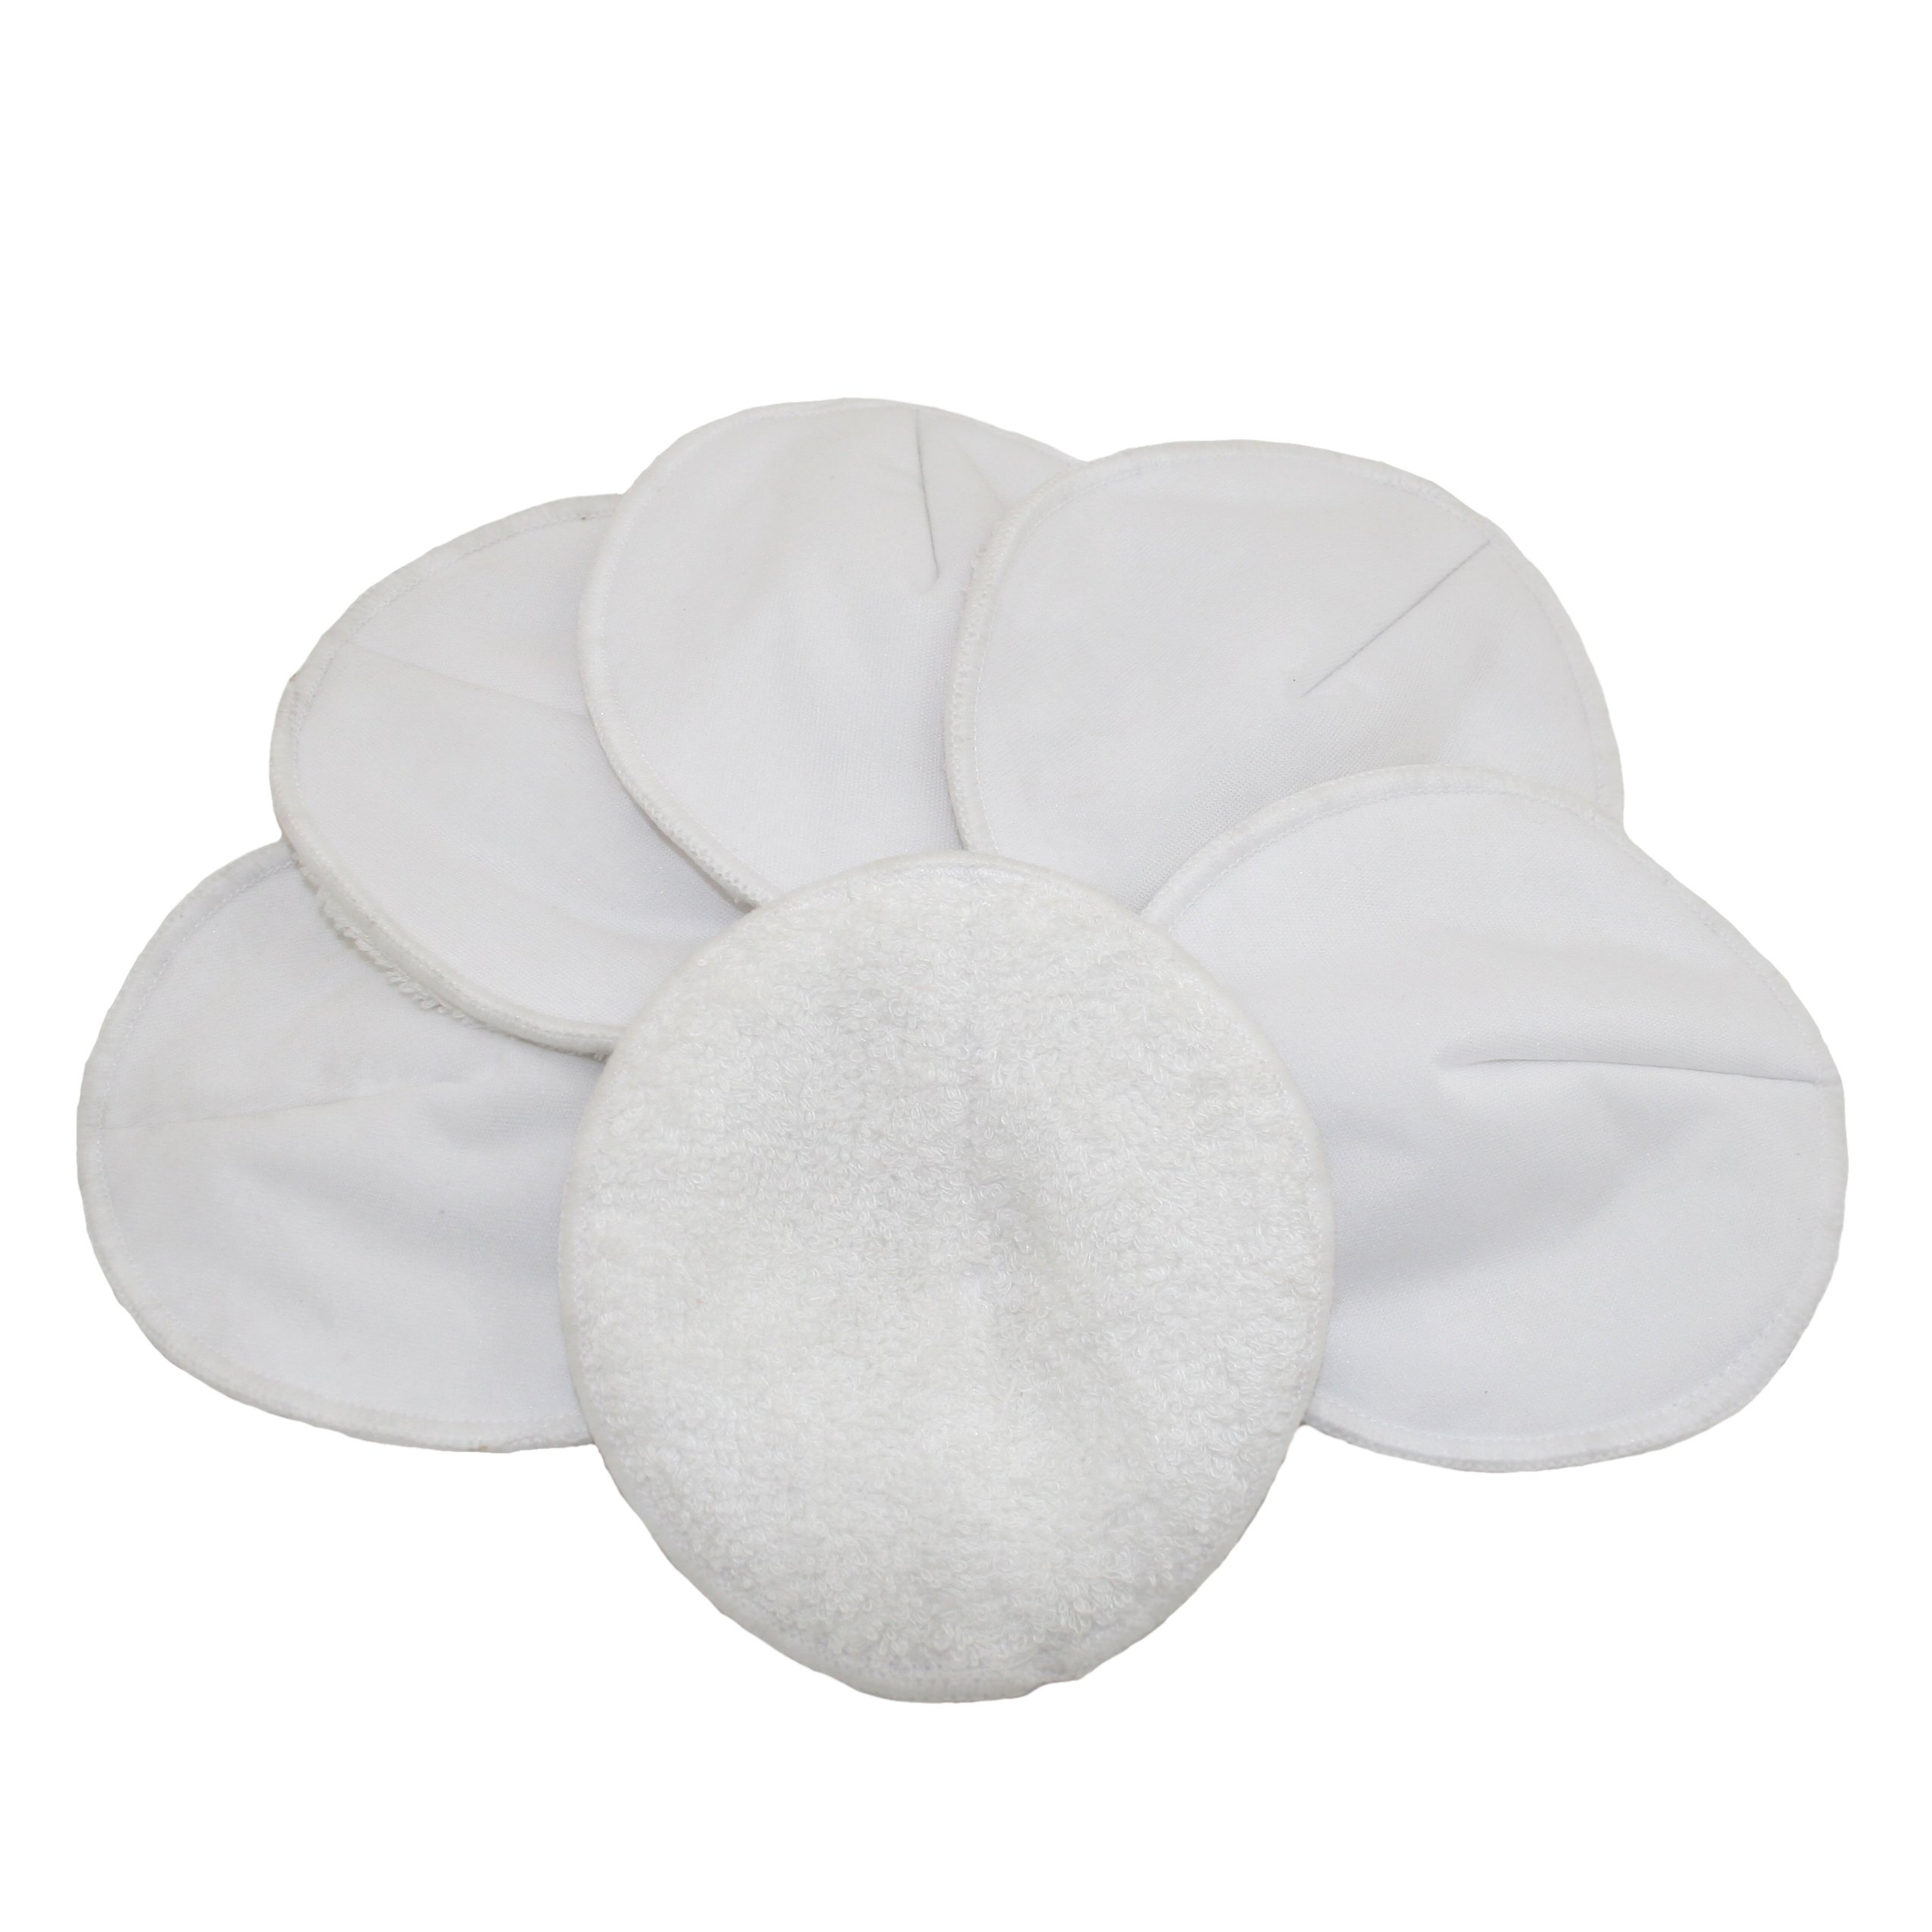 Muslinz Bamboo Cotton Breast Pads